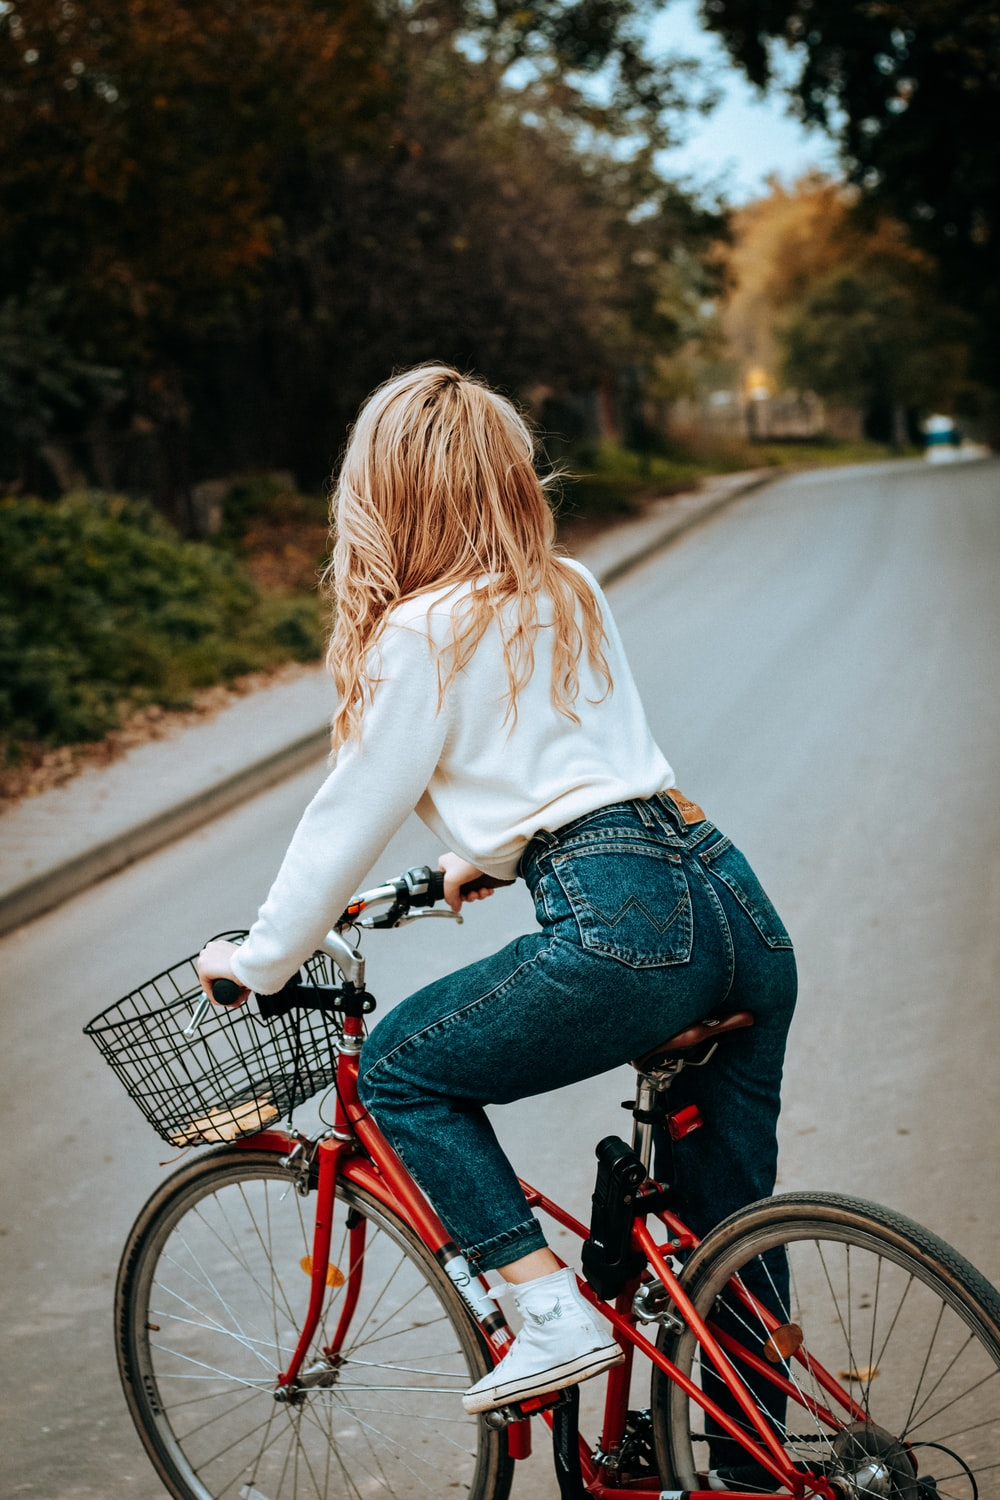 woman in white sweater and blue denim jeans riding on red bicycle on road during daytime